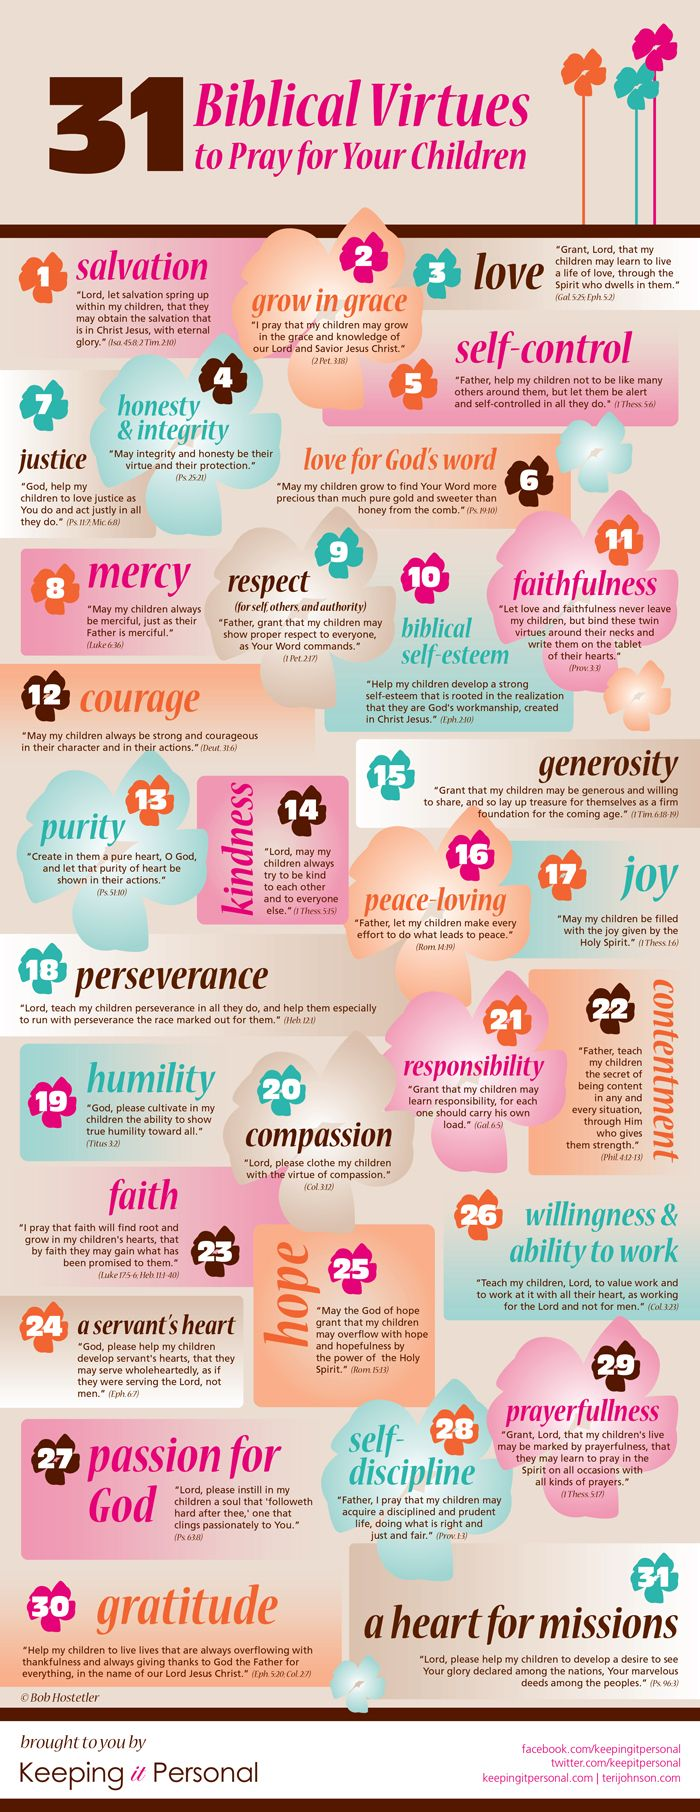 Biblical Virtues to Pray for Your Children